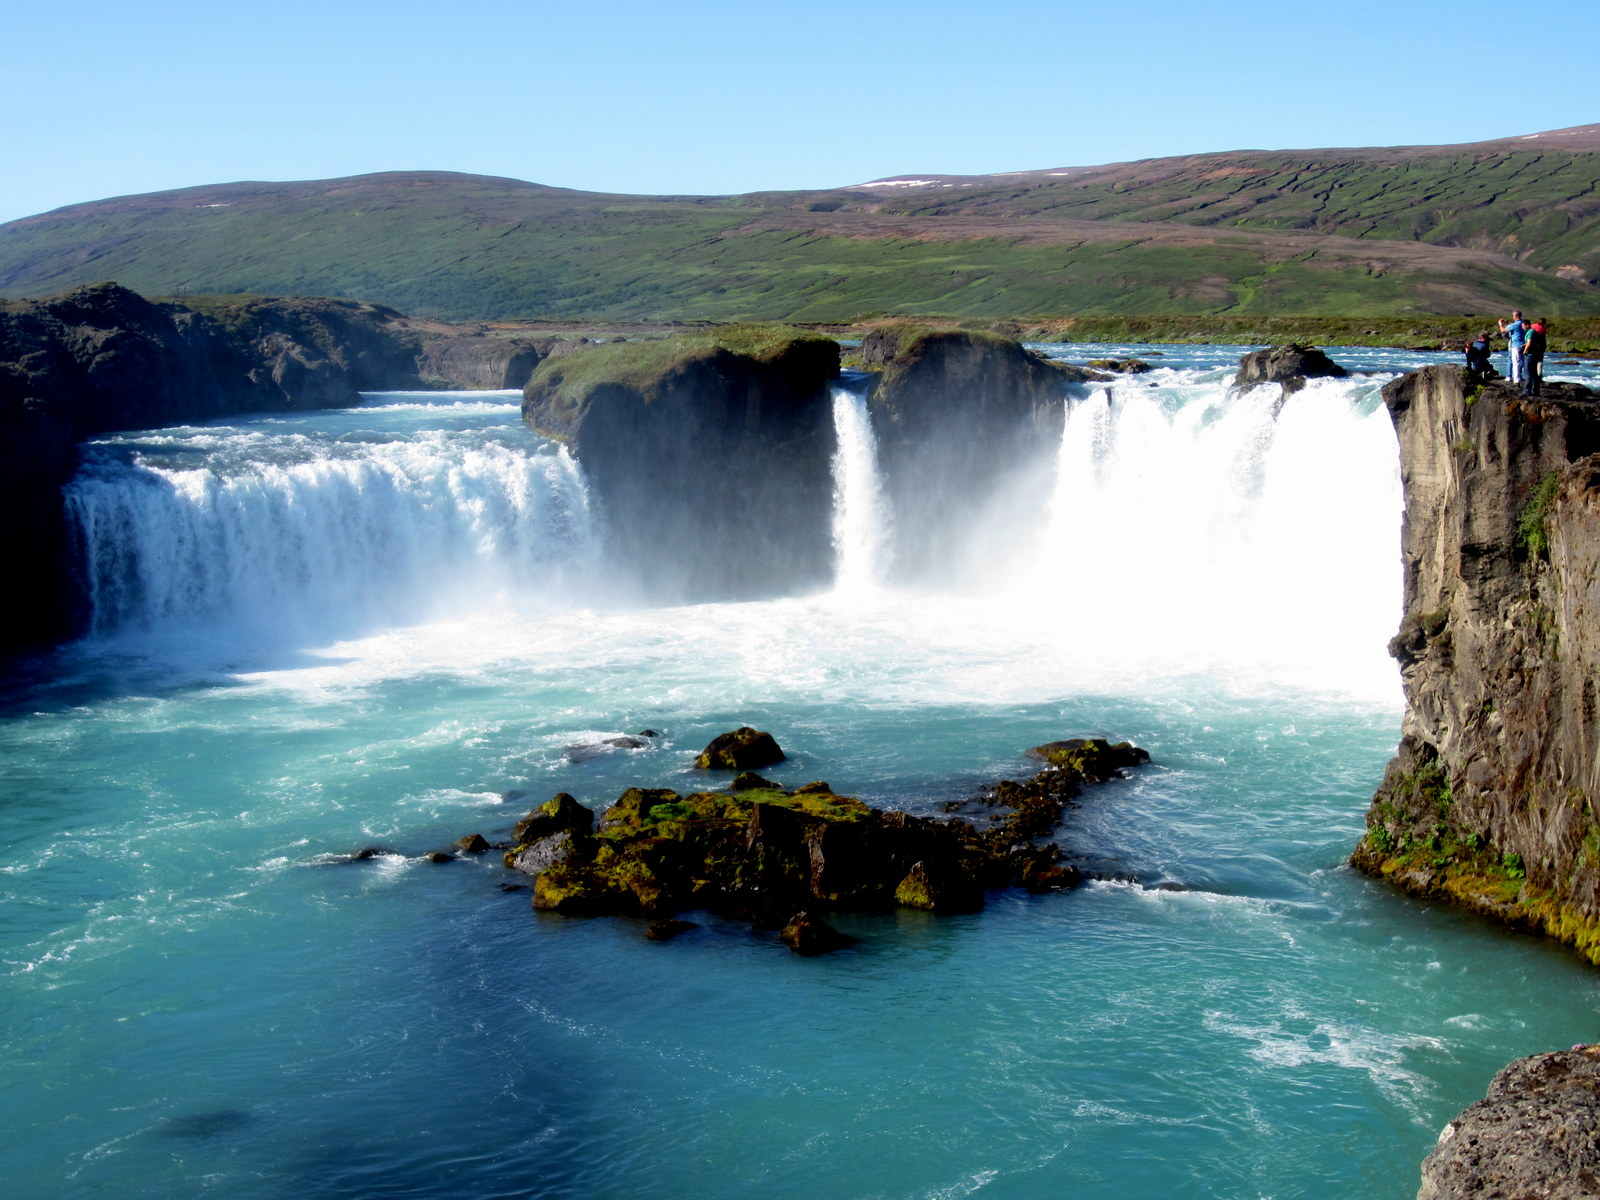 Great Falls Wallpapers Hd Widescreen The Jewels Of The North Guide To Iceland